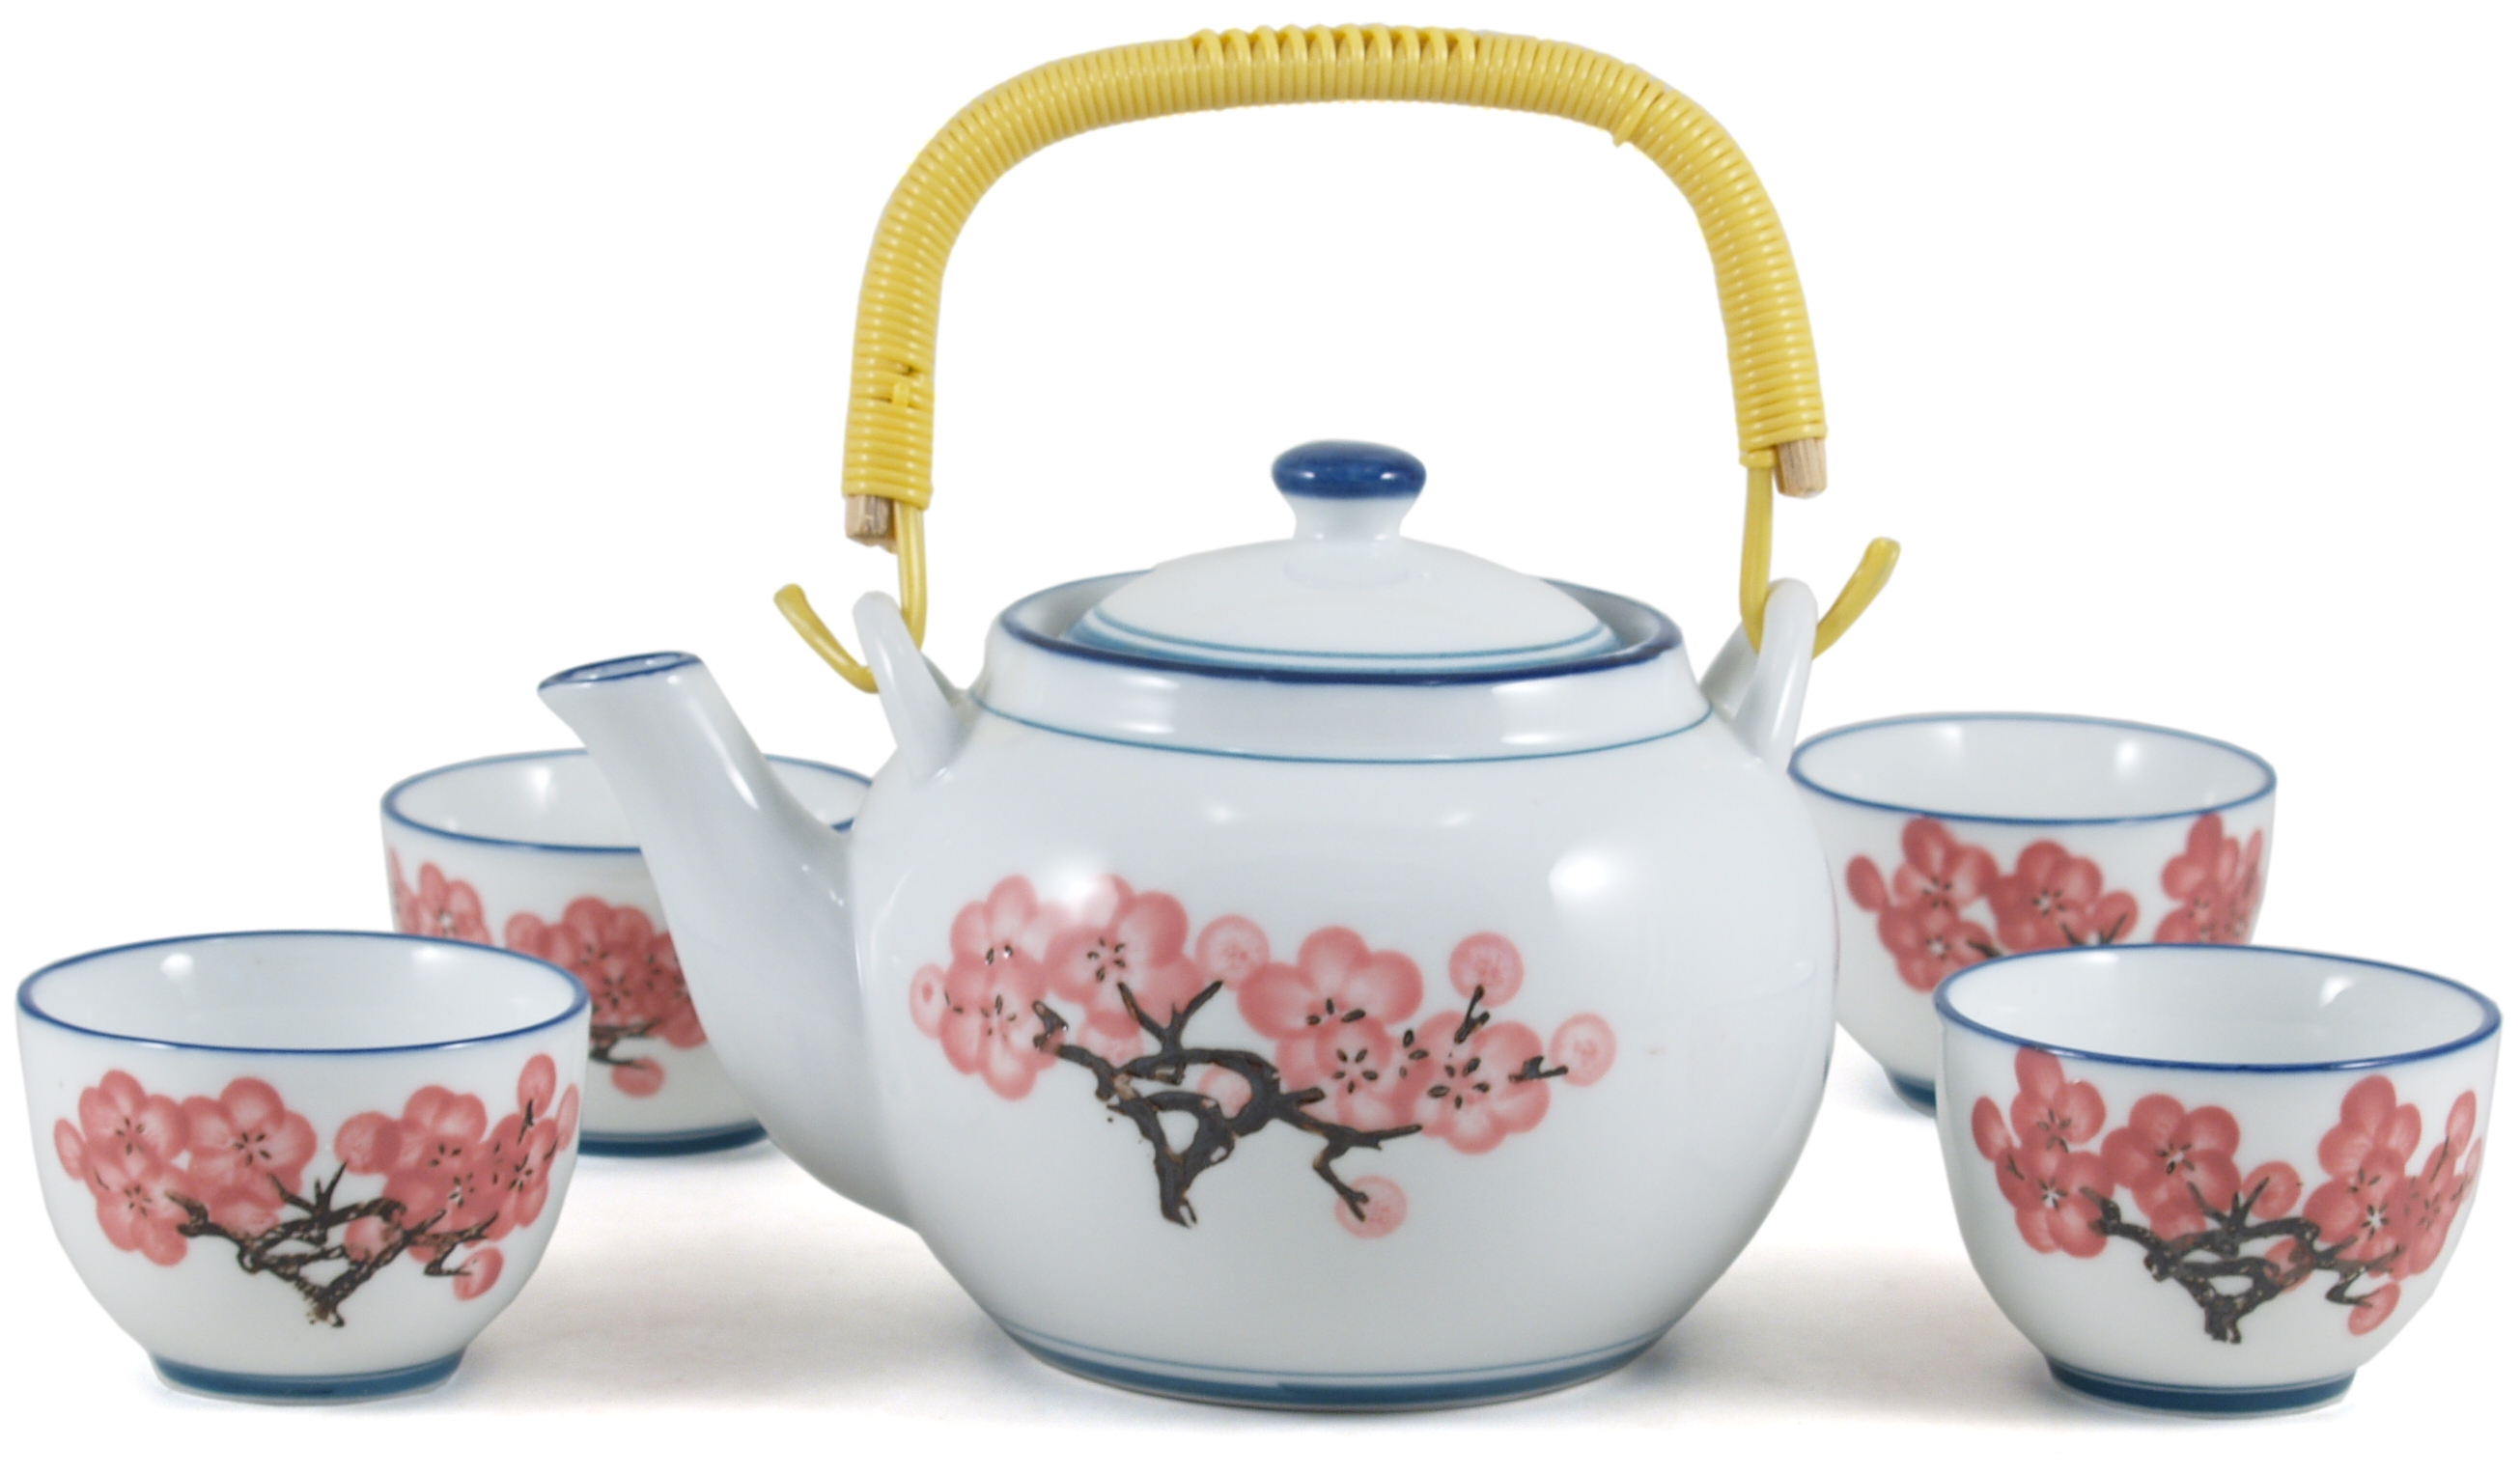 Japanese Cherry Blossom Teapot & 4 Cups, 5 Piece Set